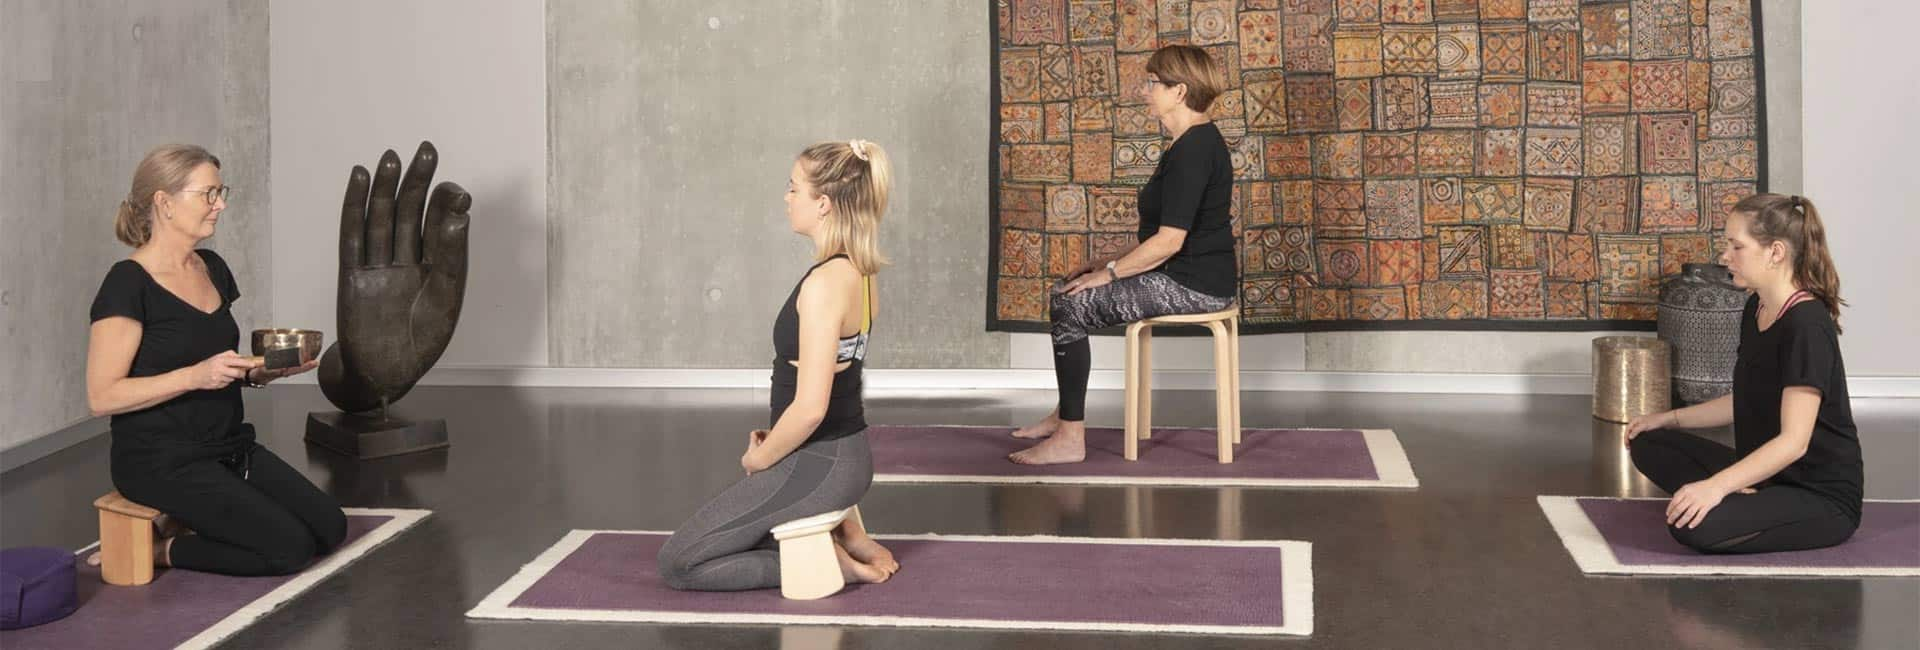 yoga-und-meditation-in-baden